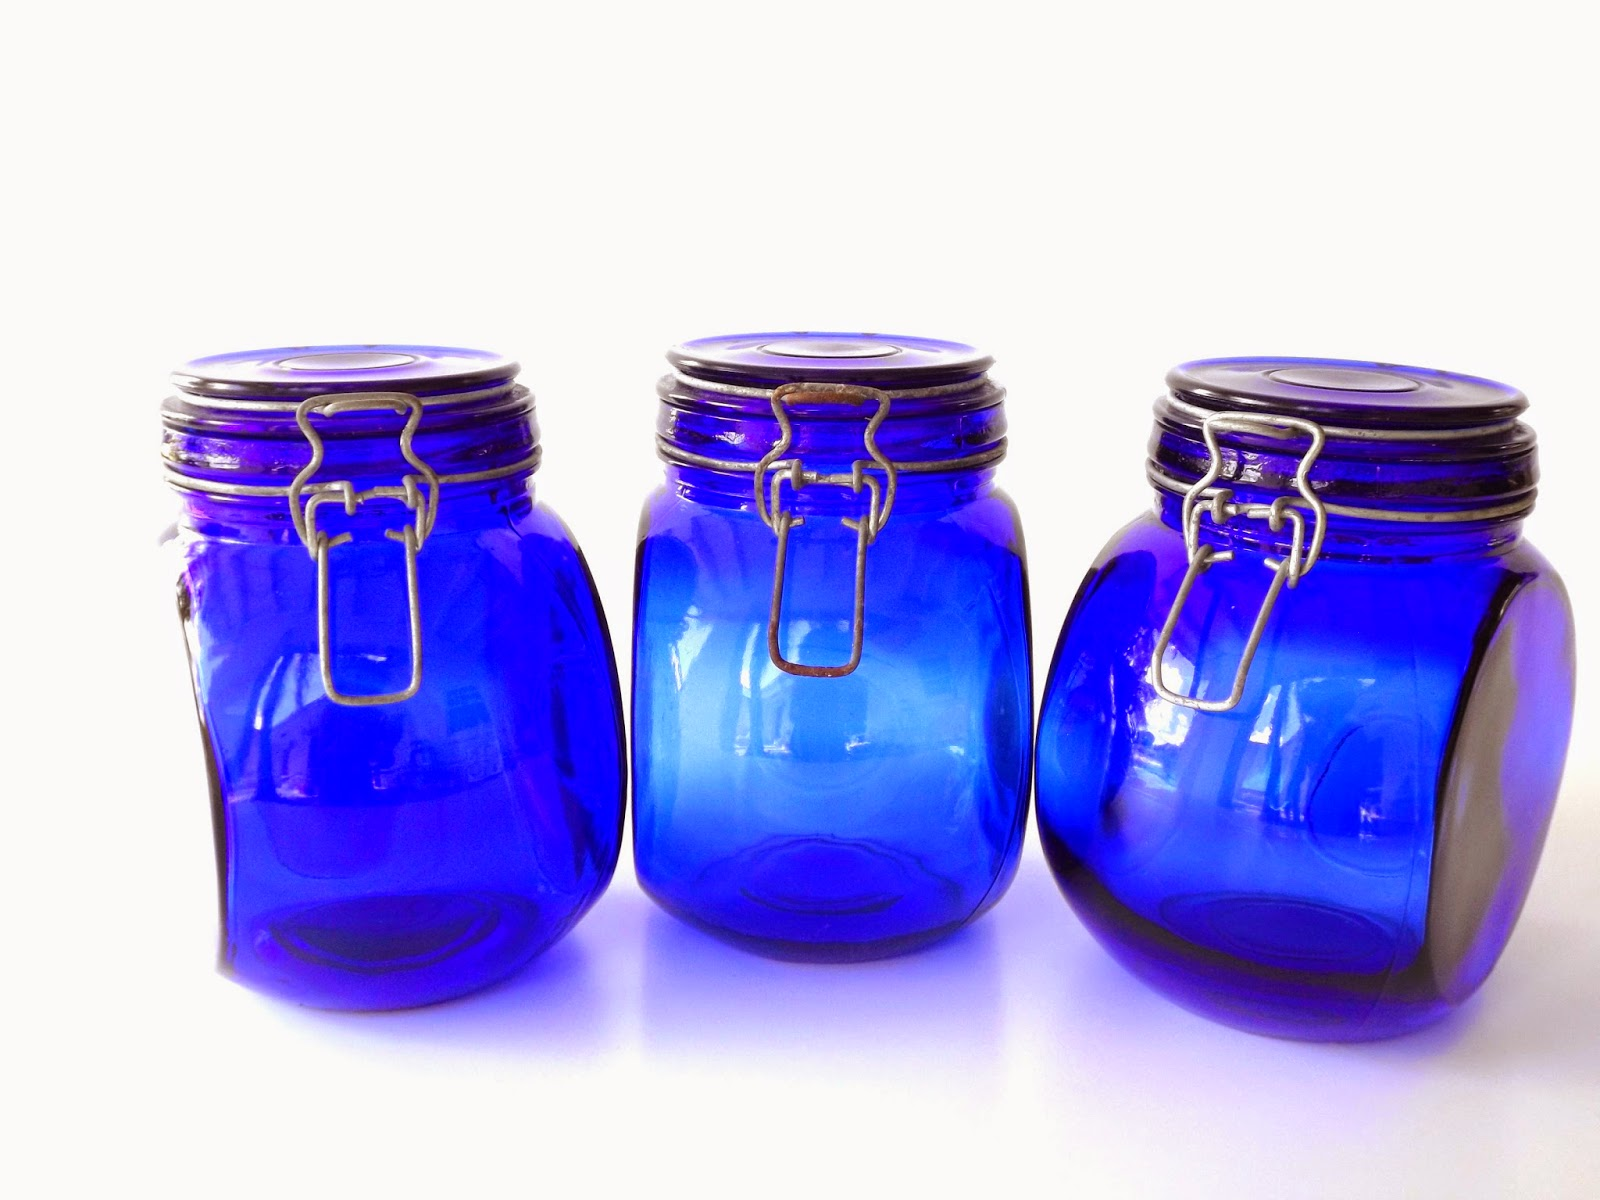 Still Stunning Vintage Resale Vintage Cobalt Jars Storage Container Home Decor Blue Glass